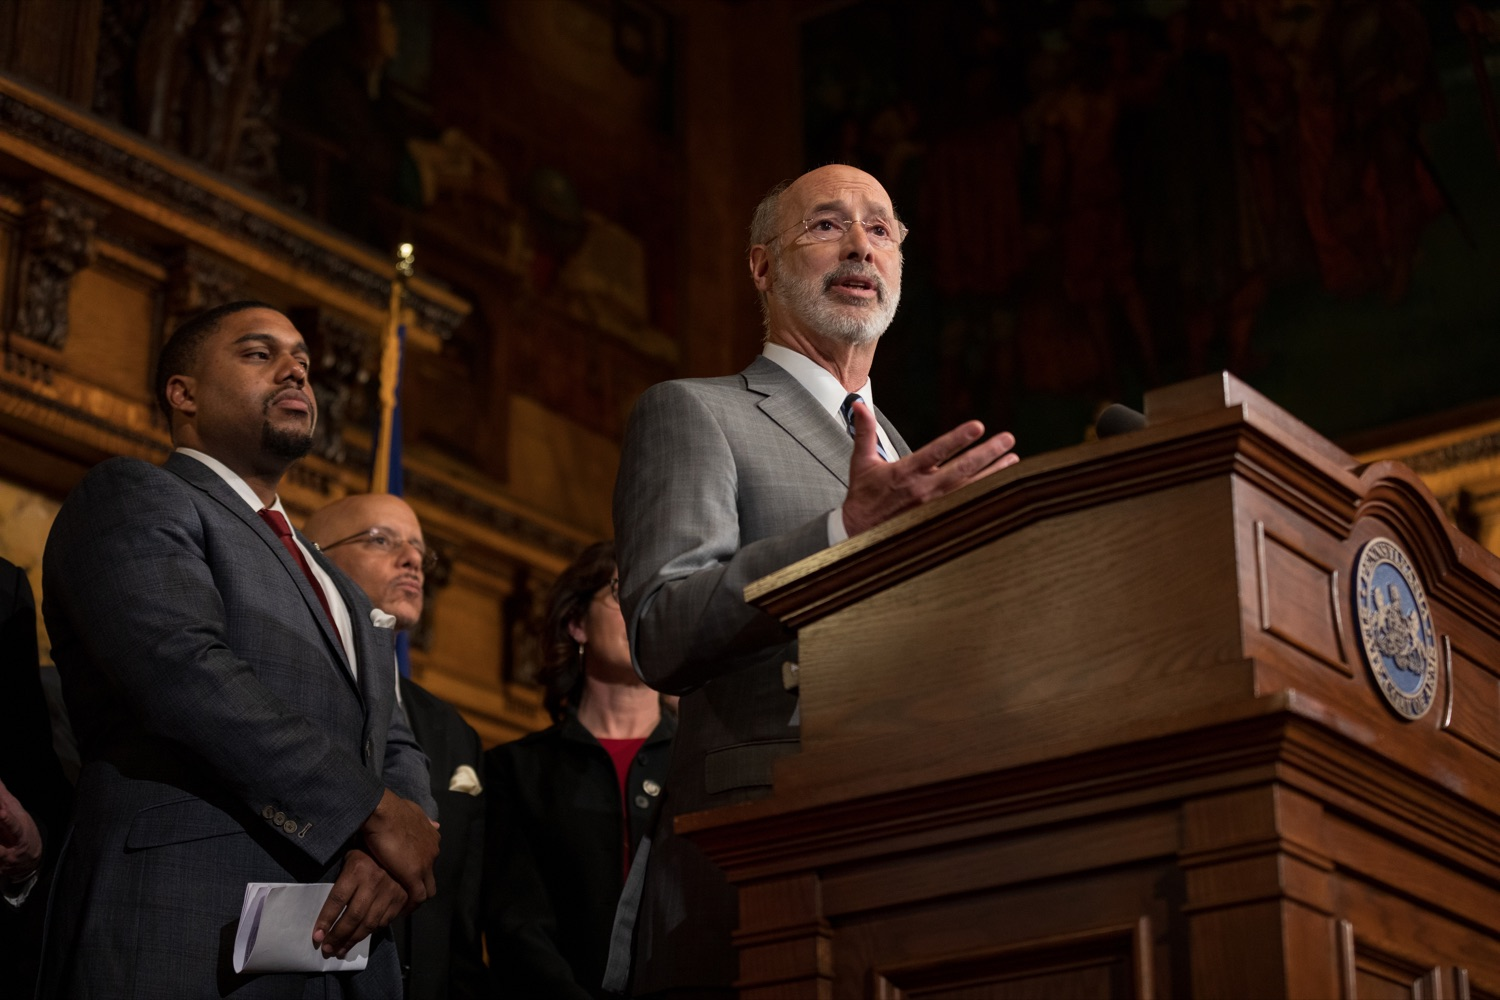 "<a href=""https://filesource.wostreaming.net/commonwealthofpa/photo/17753_GOV_Lead_Contaminants_NK_005.JPG"" target=""_blank"">⇣ Download Photo<br></a>Governor Tom Wolf speaks during a press conference, during which Governor Wolf proposed 2020-21 budget items totaling more than $1.1 billion to support reducing the risks to Pennsylvanians of lead and asbestos, inside the Governor's Reception Room at the State Capitol building in Harrisburg on Wednesday, January 29, 2020."